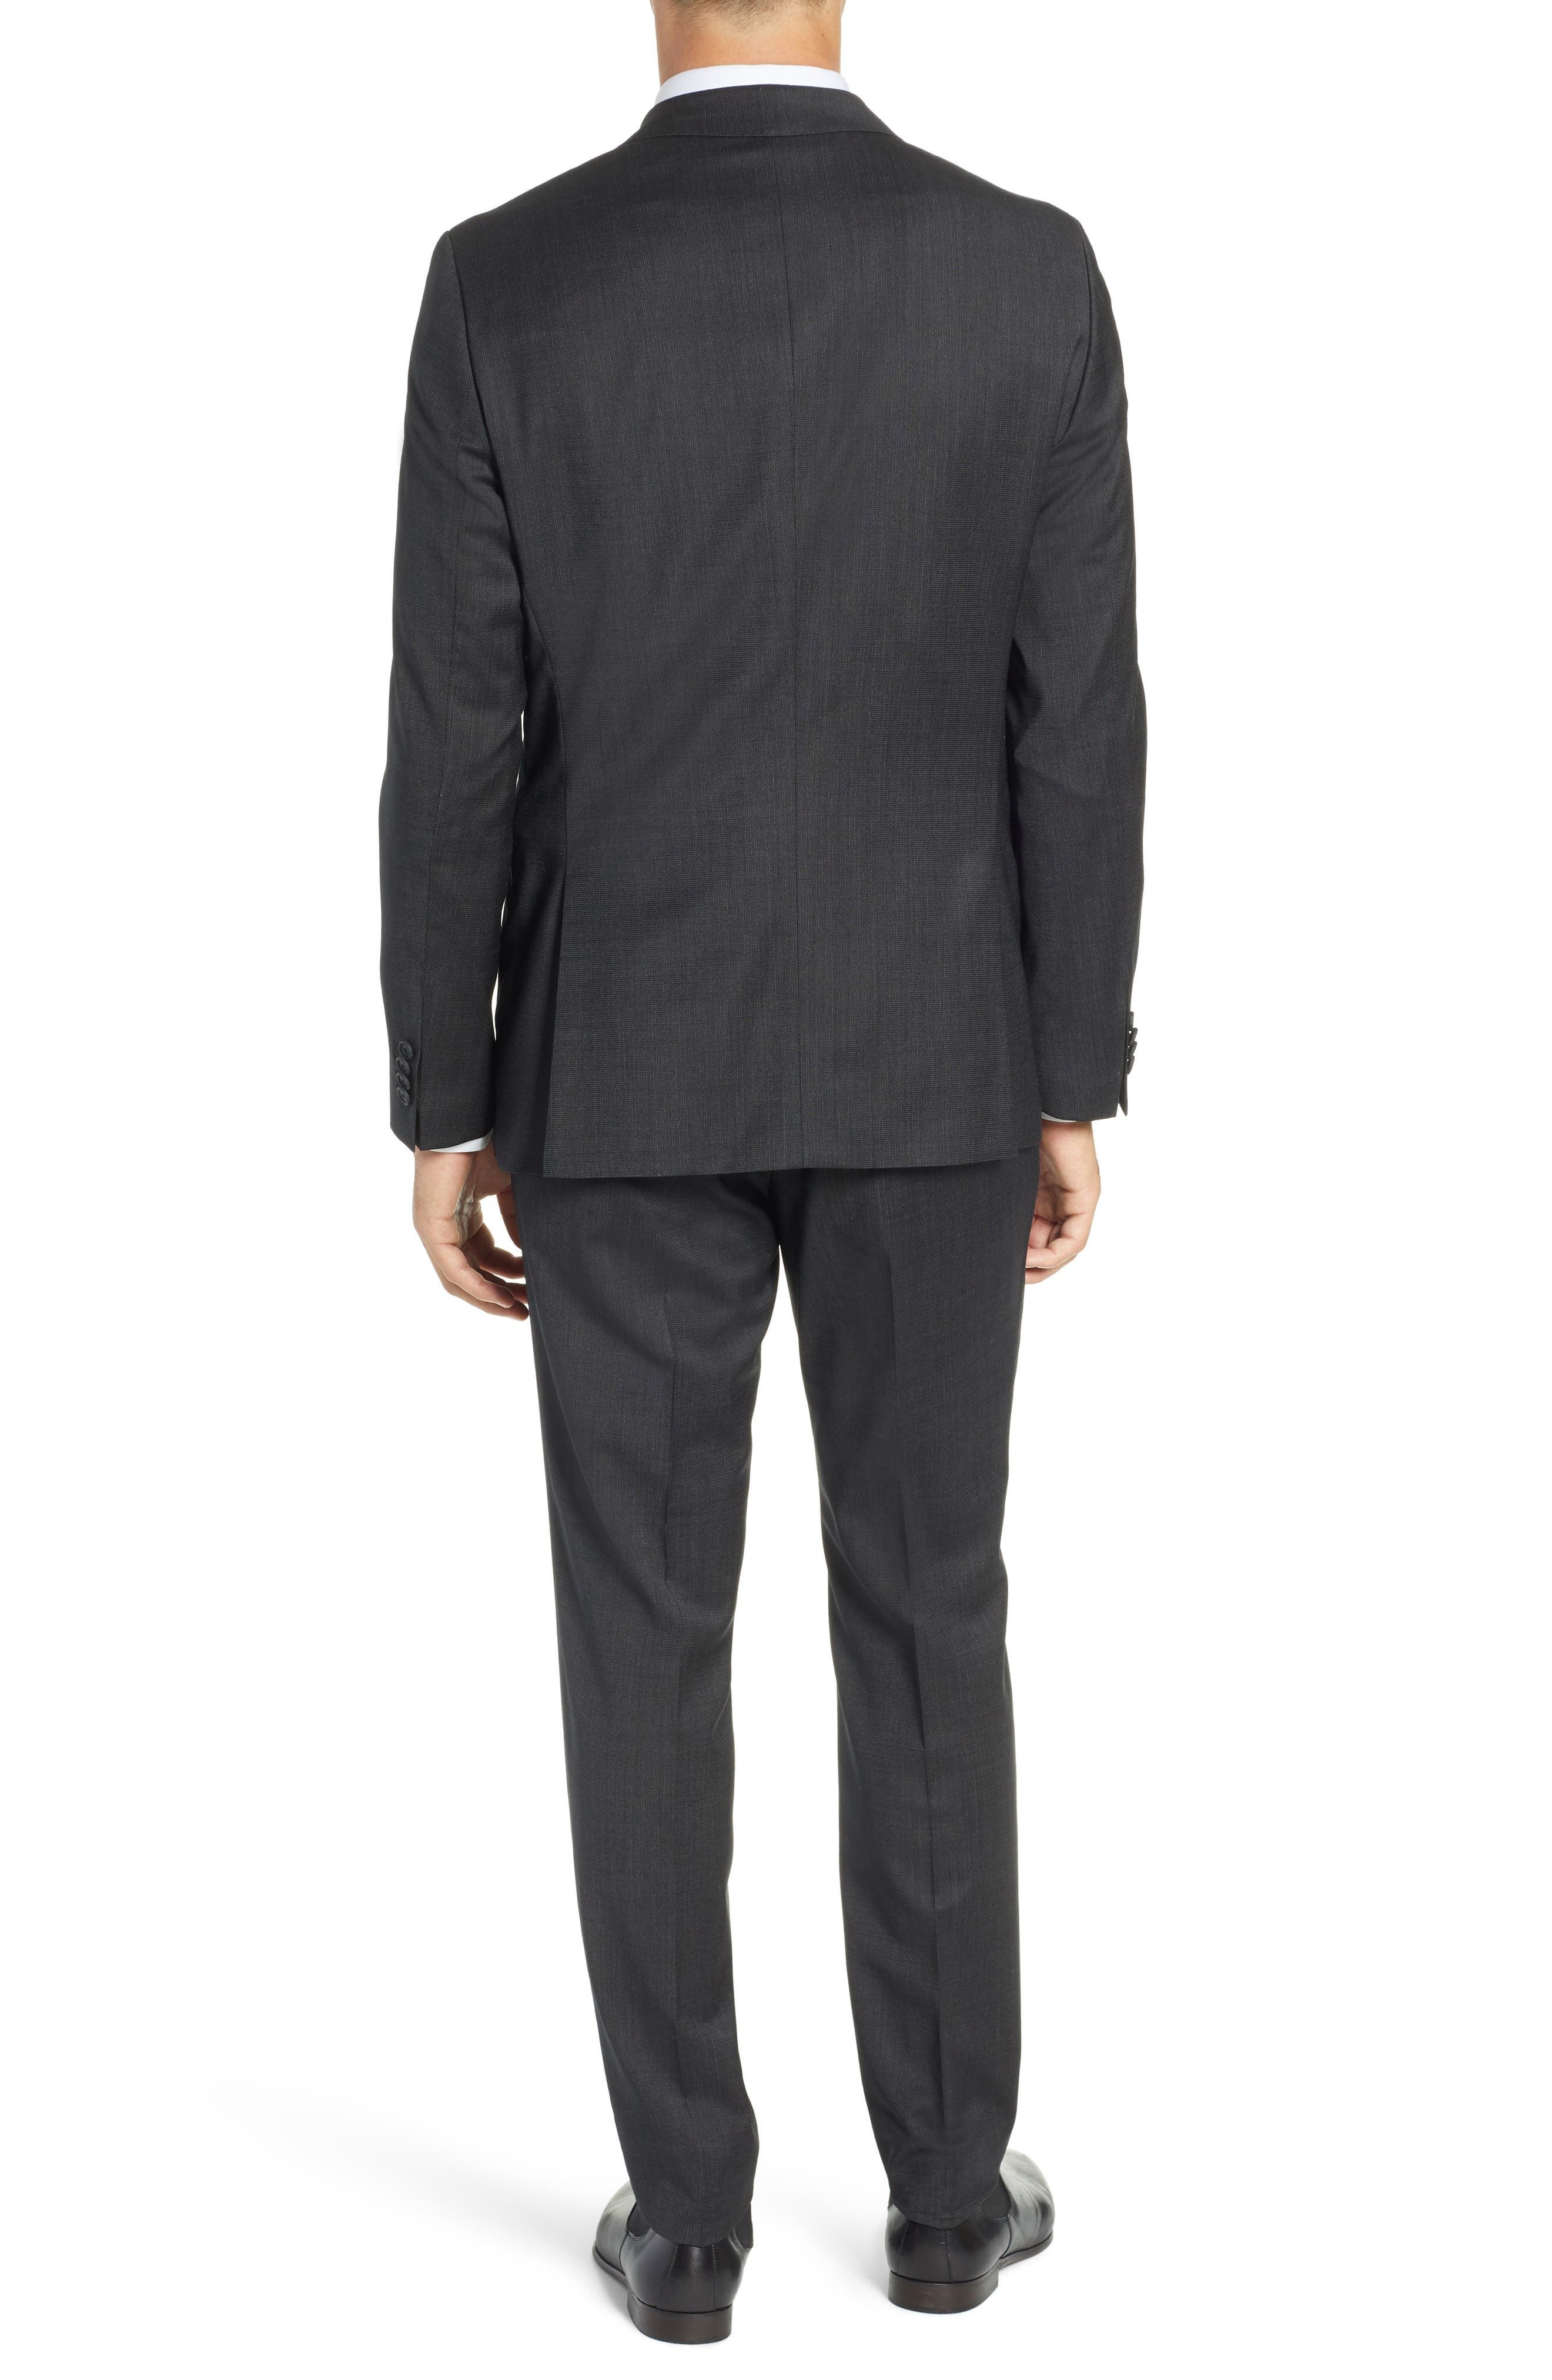 BOSS, Nestro/Byte Trim Fit Stretch Solid Wool Suit, Alternate thumbnail 2, color, 001